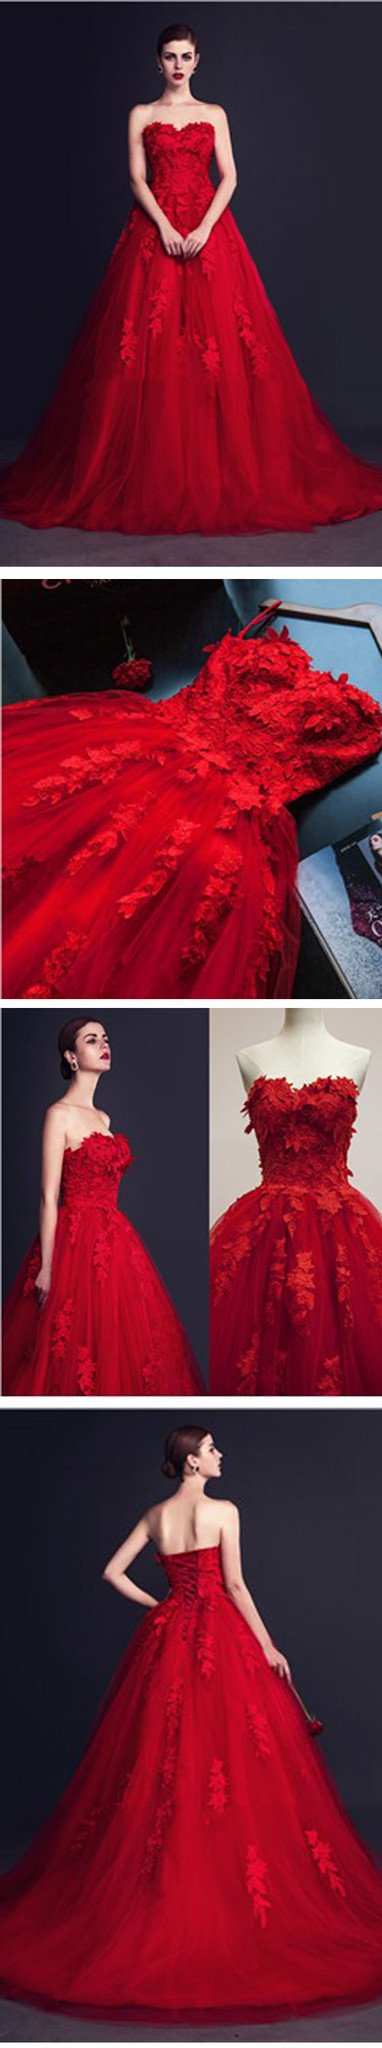 Stunning Red Tulle Sweetheart Appliques Lace Up Ball Gown Wedding Dresses, WD0150